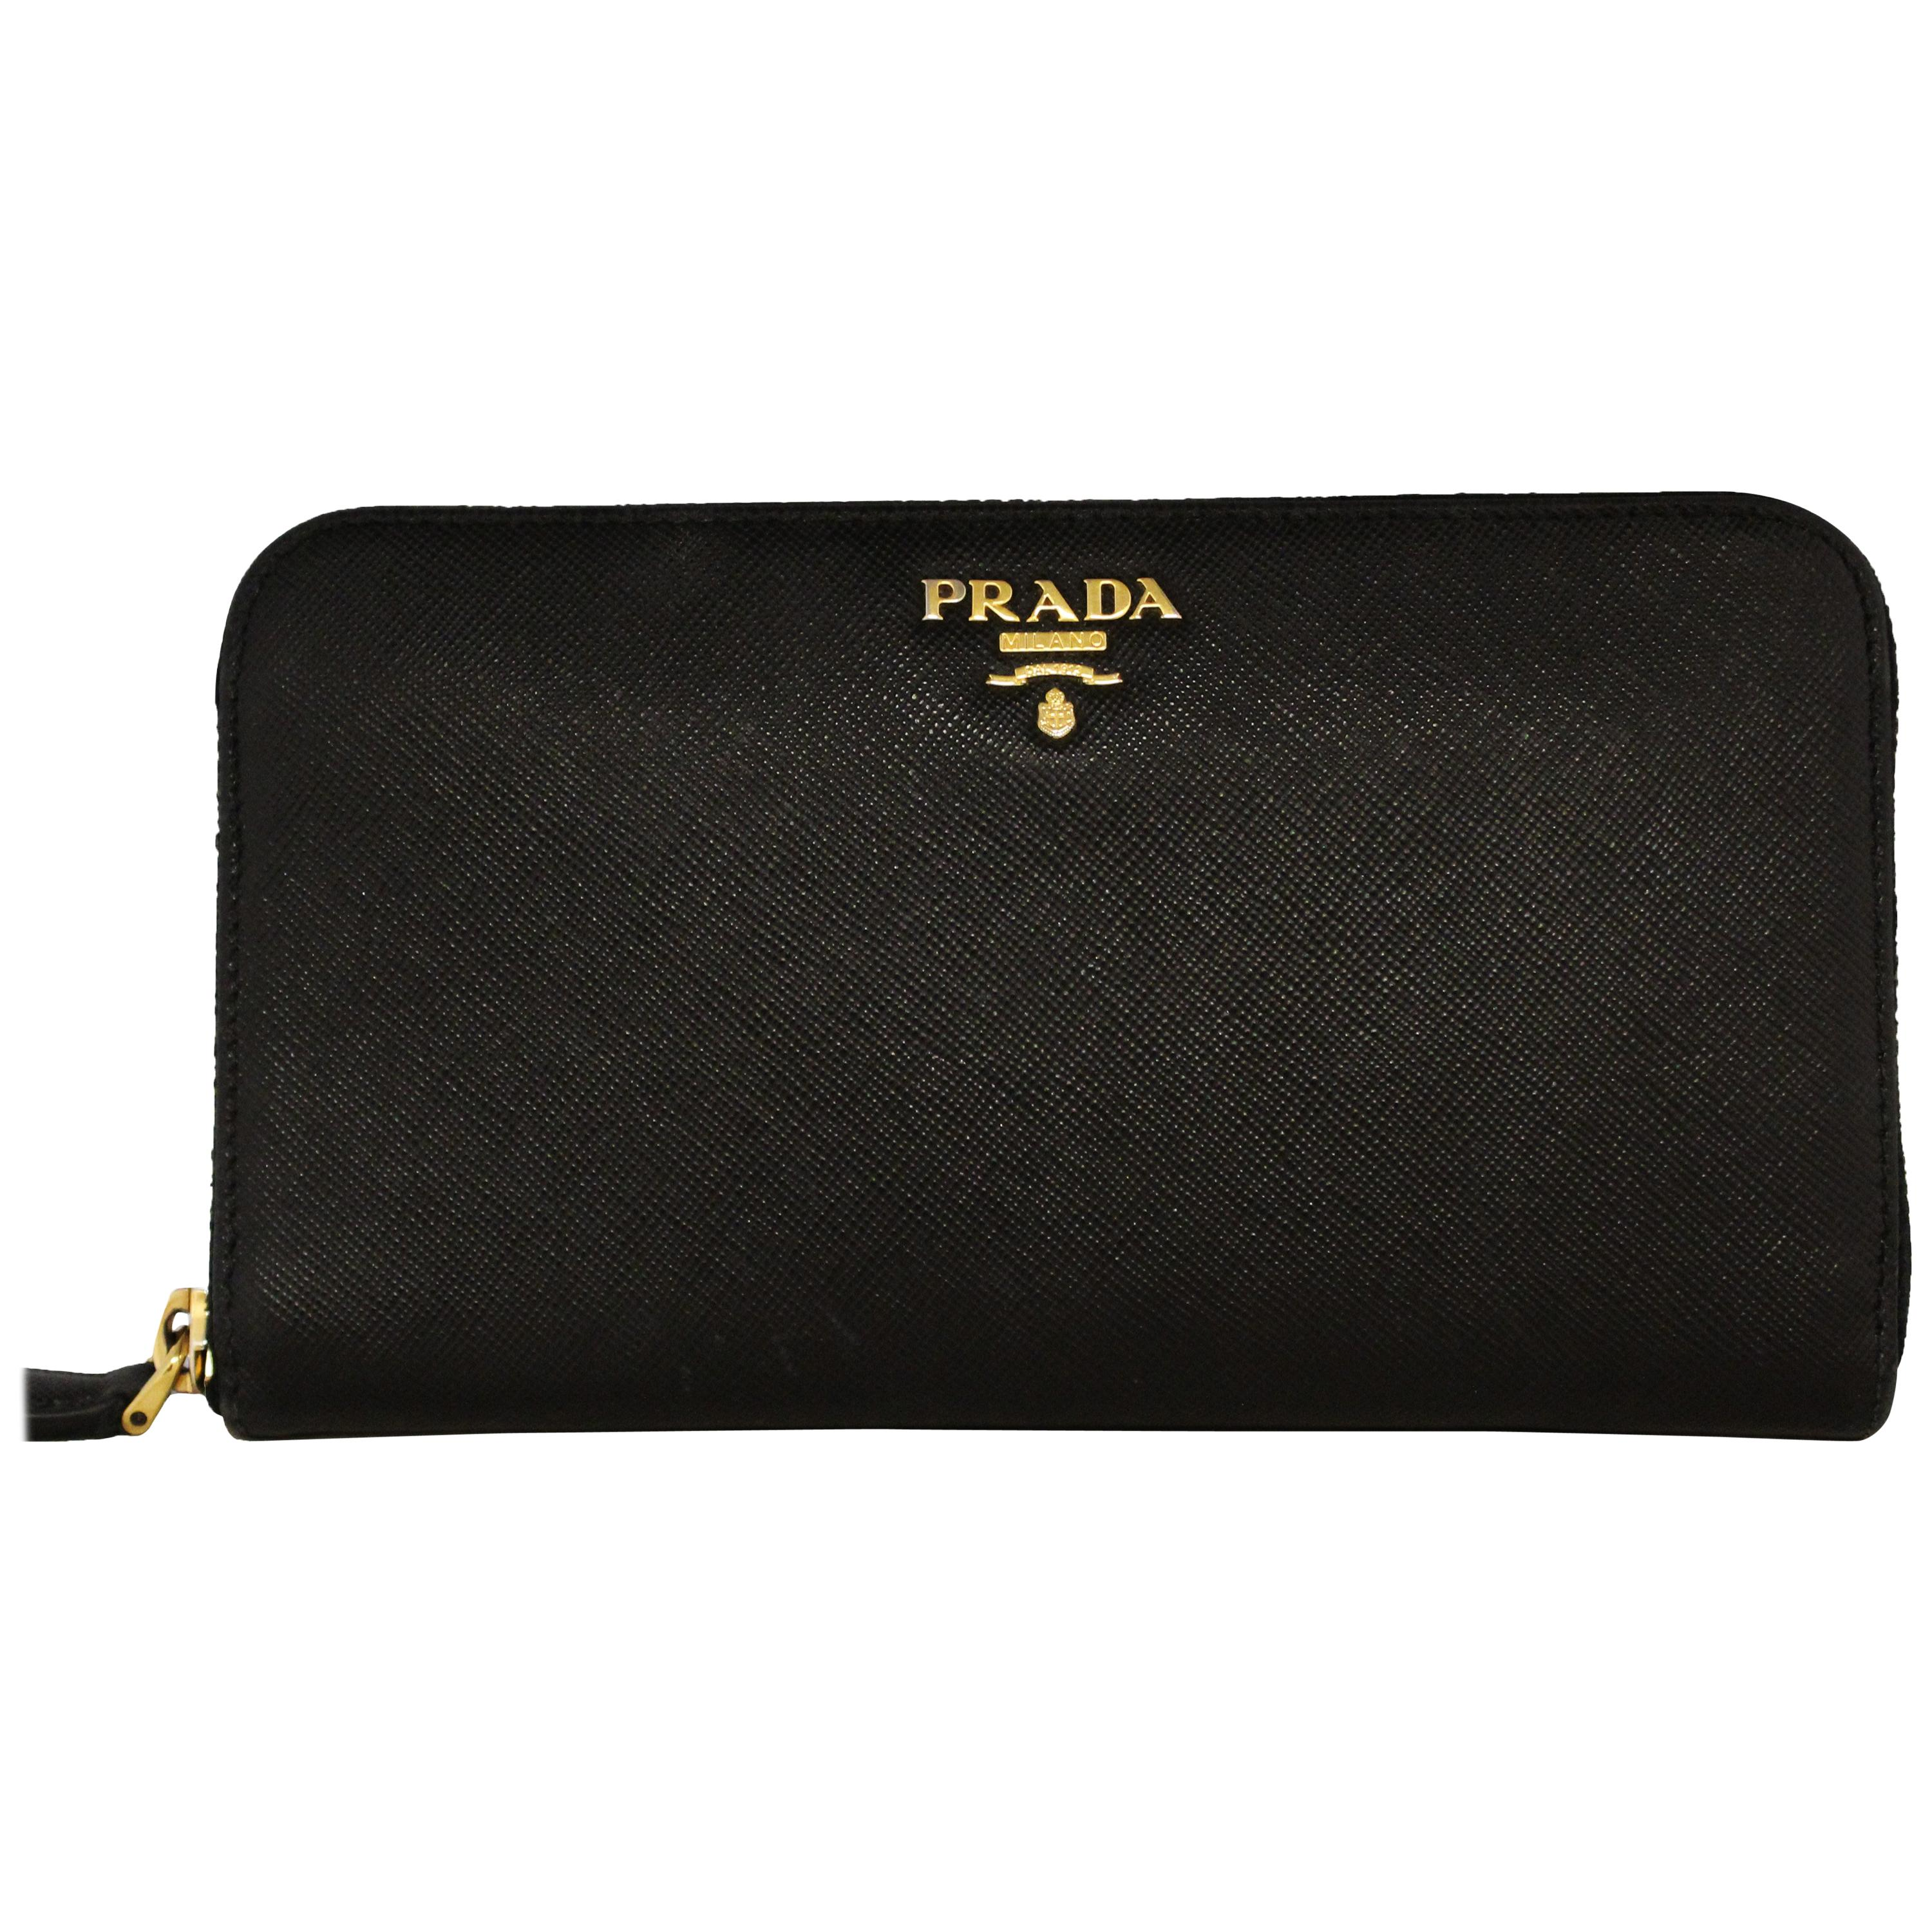 b7b3d7cdc9f2f4 Vintage Prada Wallets and Small Accessories - 50 For Sale at 1stdibs